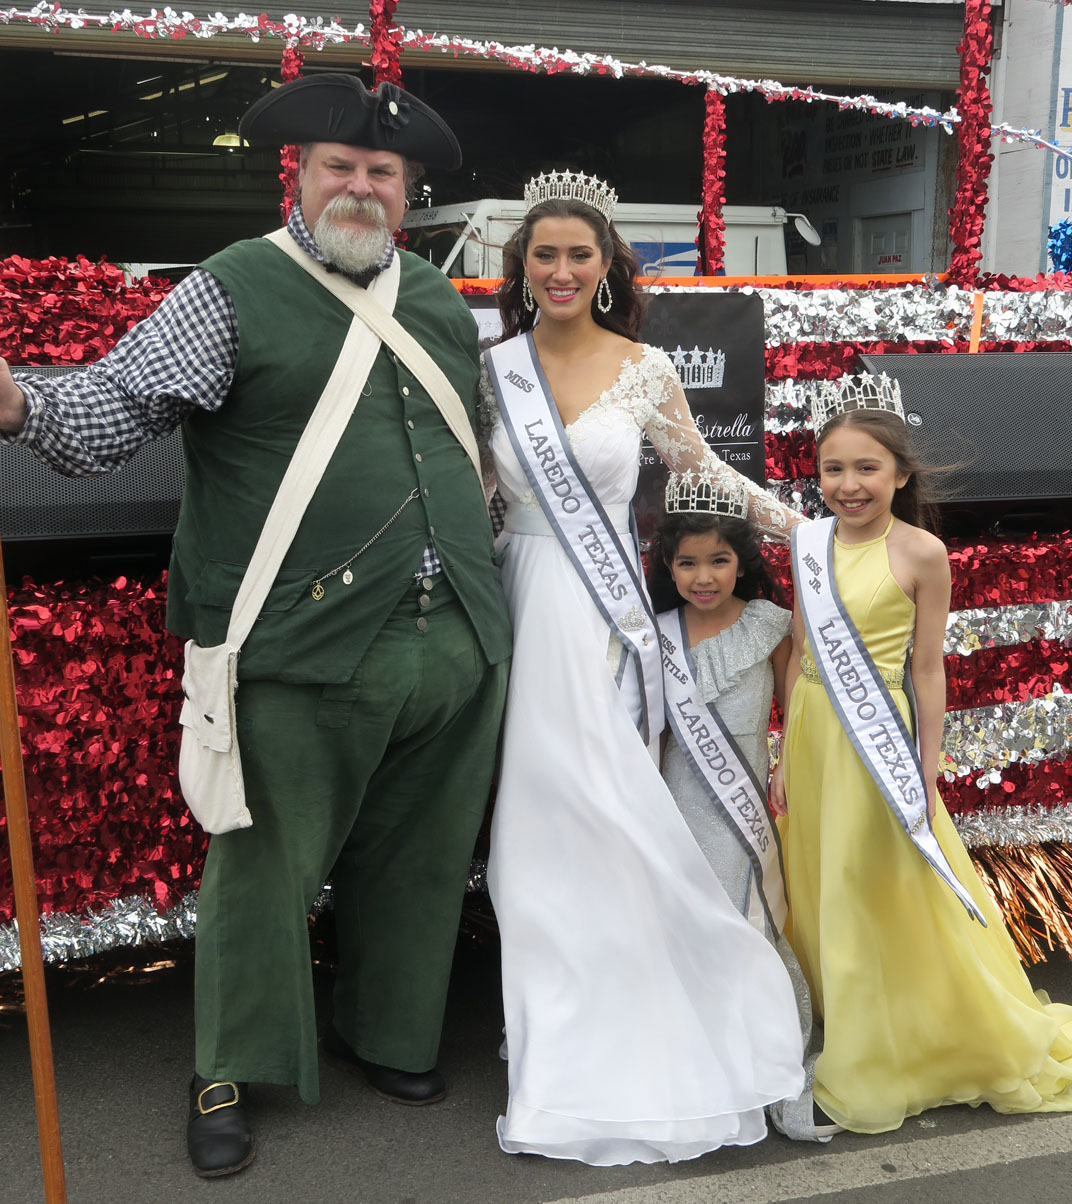 Michael Bailey with parade queens. 22 Feb 2019